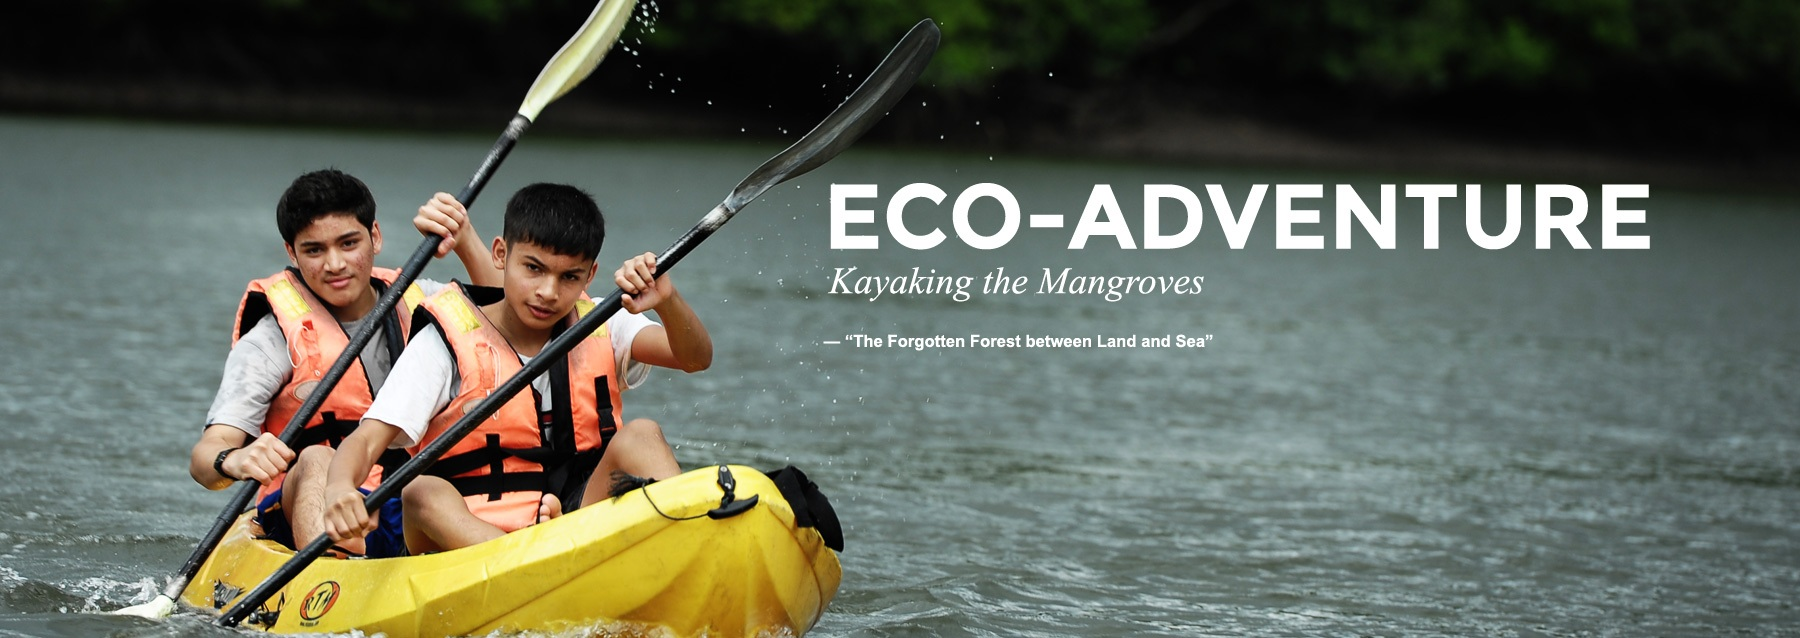 kayaking-header